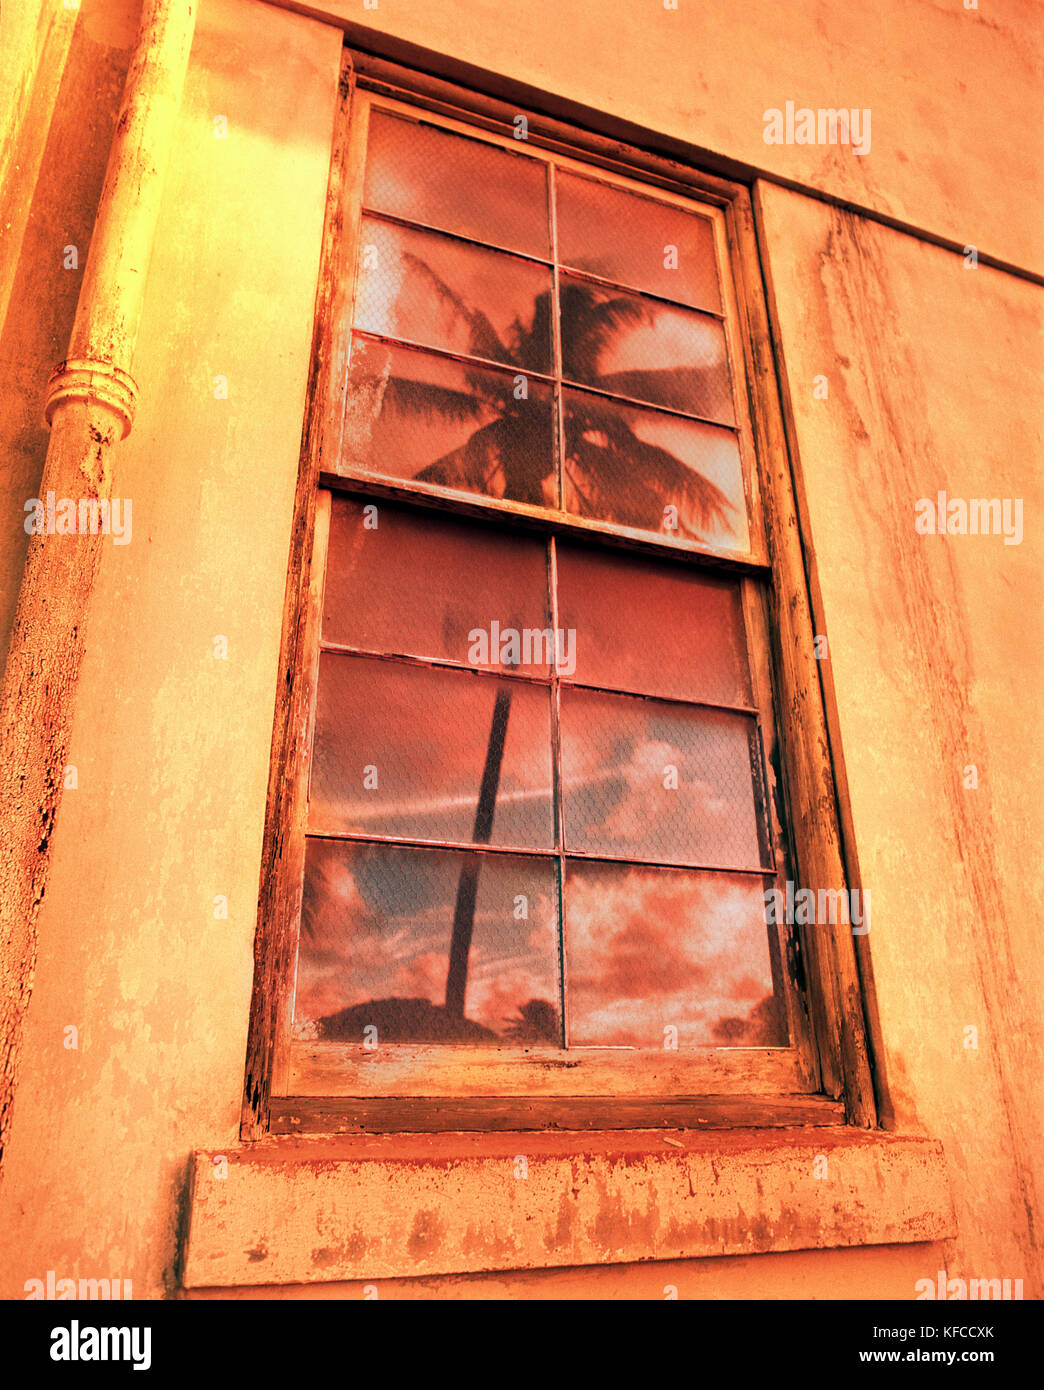 USA, Hawaii, Oahu, the North Shore, a palm tree and sunset reflect in the window of a building that was an old convent - Stock Image